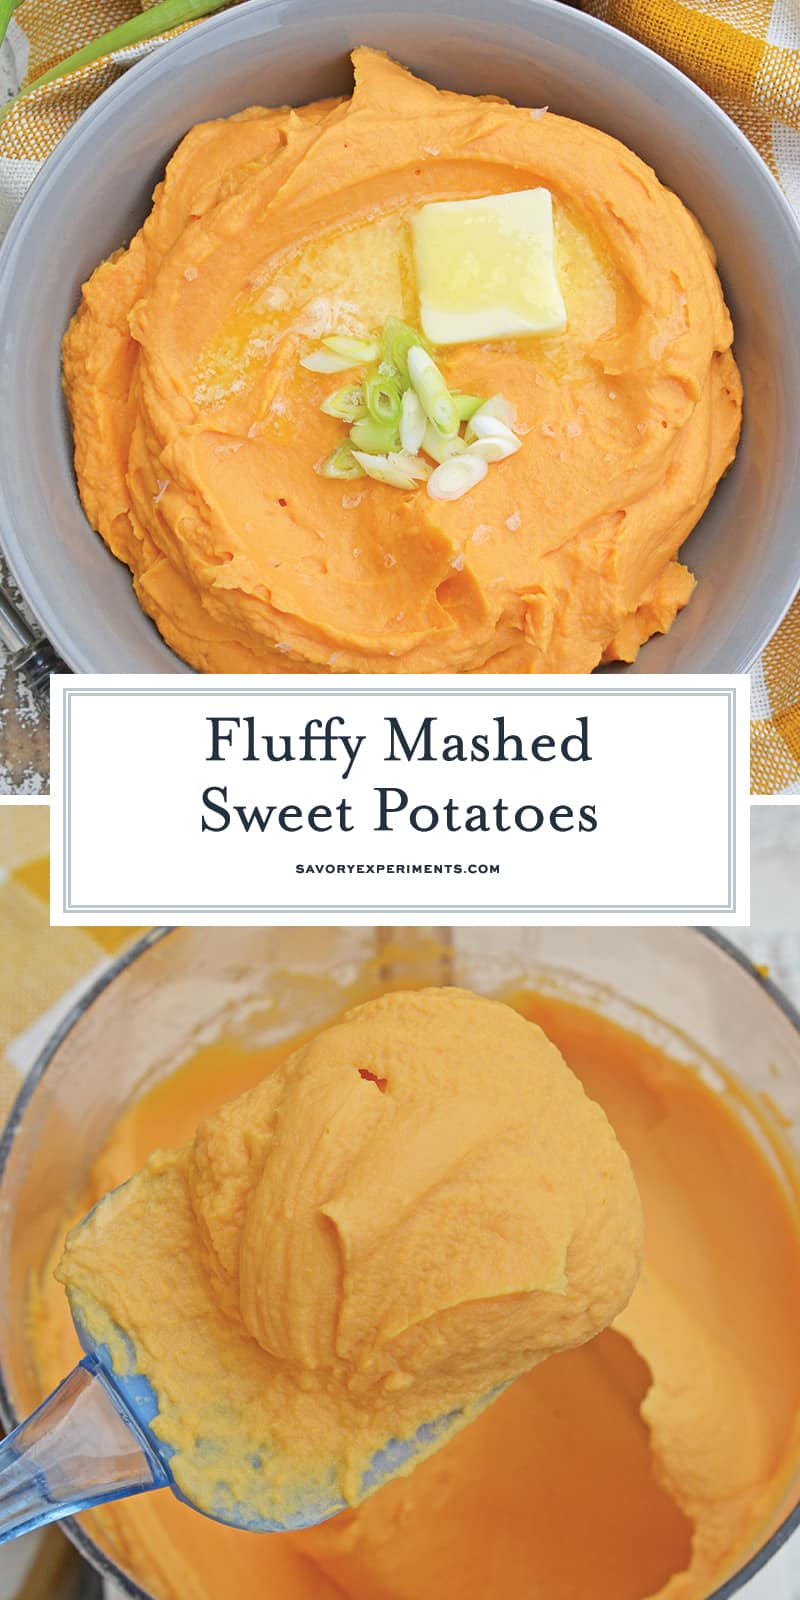 This Mashed Sweet Potatoes recipe uses baked sweet potatoes with natural sugars, bay leaf infused cream and a spike of orange juice for the best sweet potato mash ever! #sweetpotatomash #mashedsweetpotatoes www.savoryexperiments.com